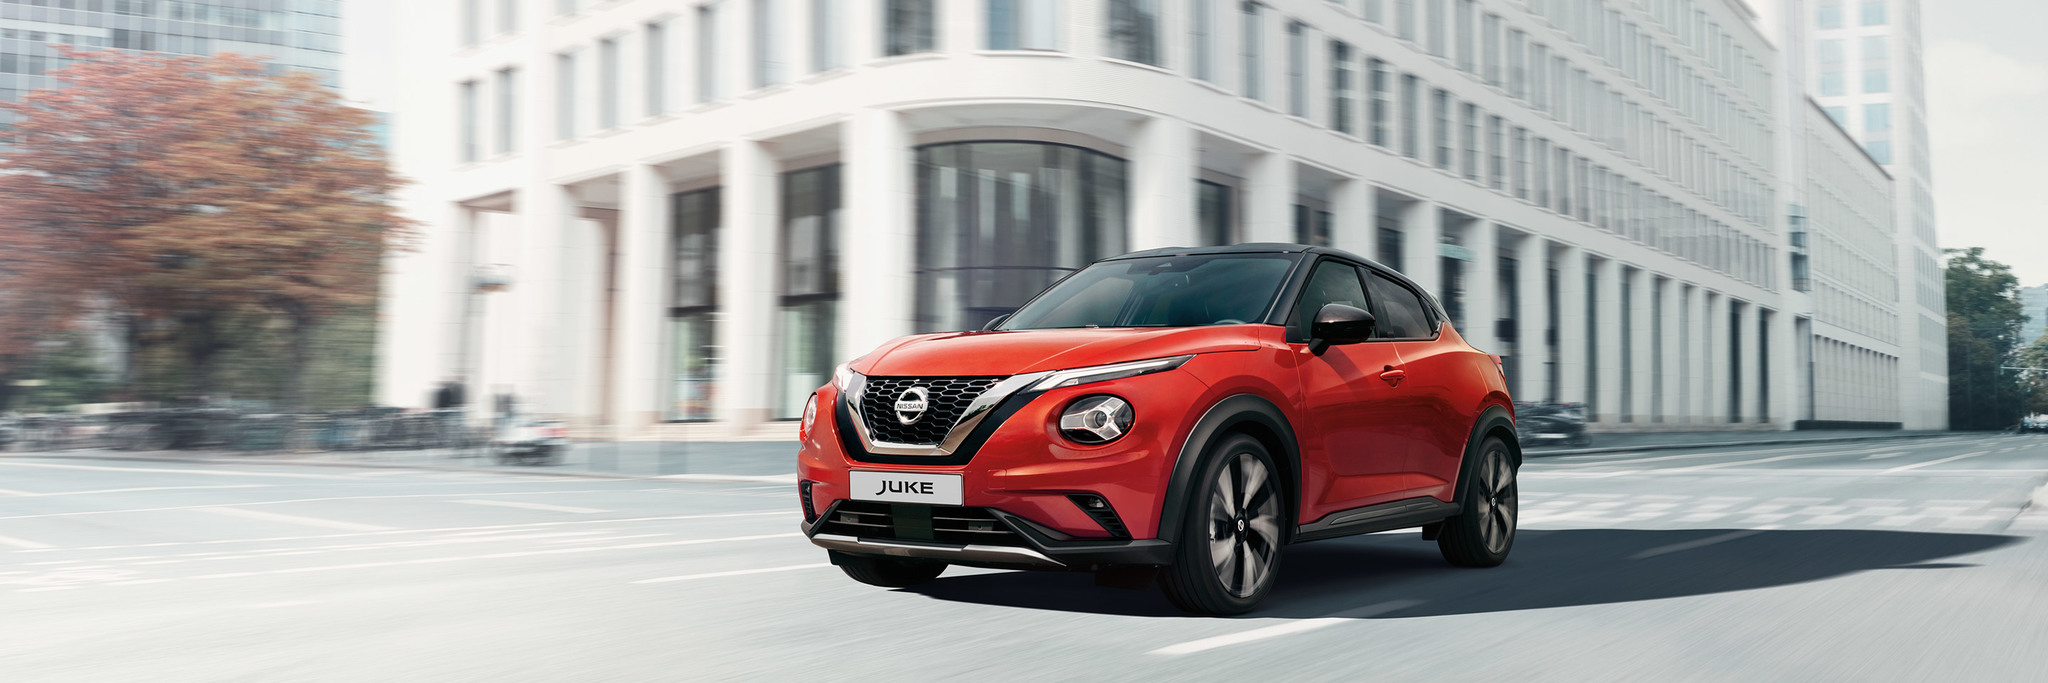 Nya Nissan Juke - Crossover-coupén